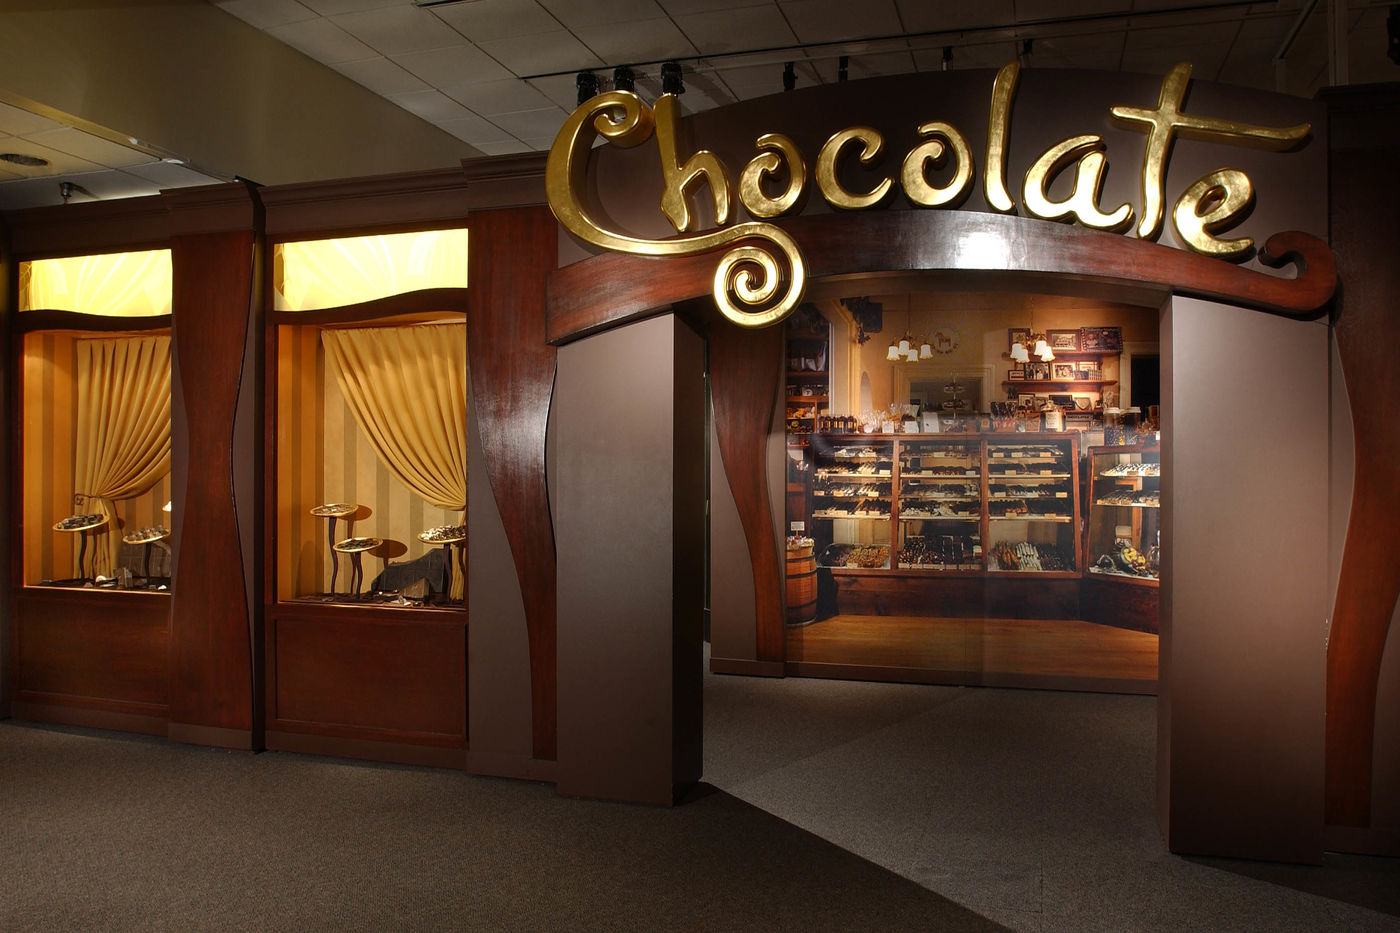 "Exhibition title ""Chocolate"" displayed over arched entranceway to exhibition. Through archway, a life-size image of a store chocolate display is visible."